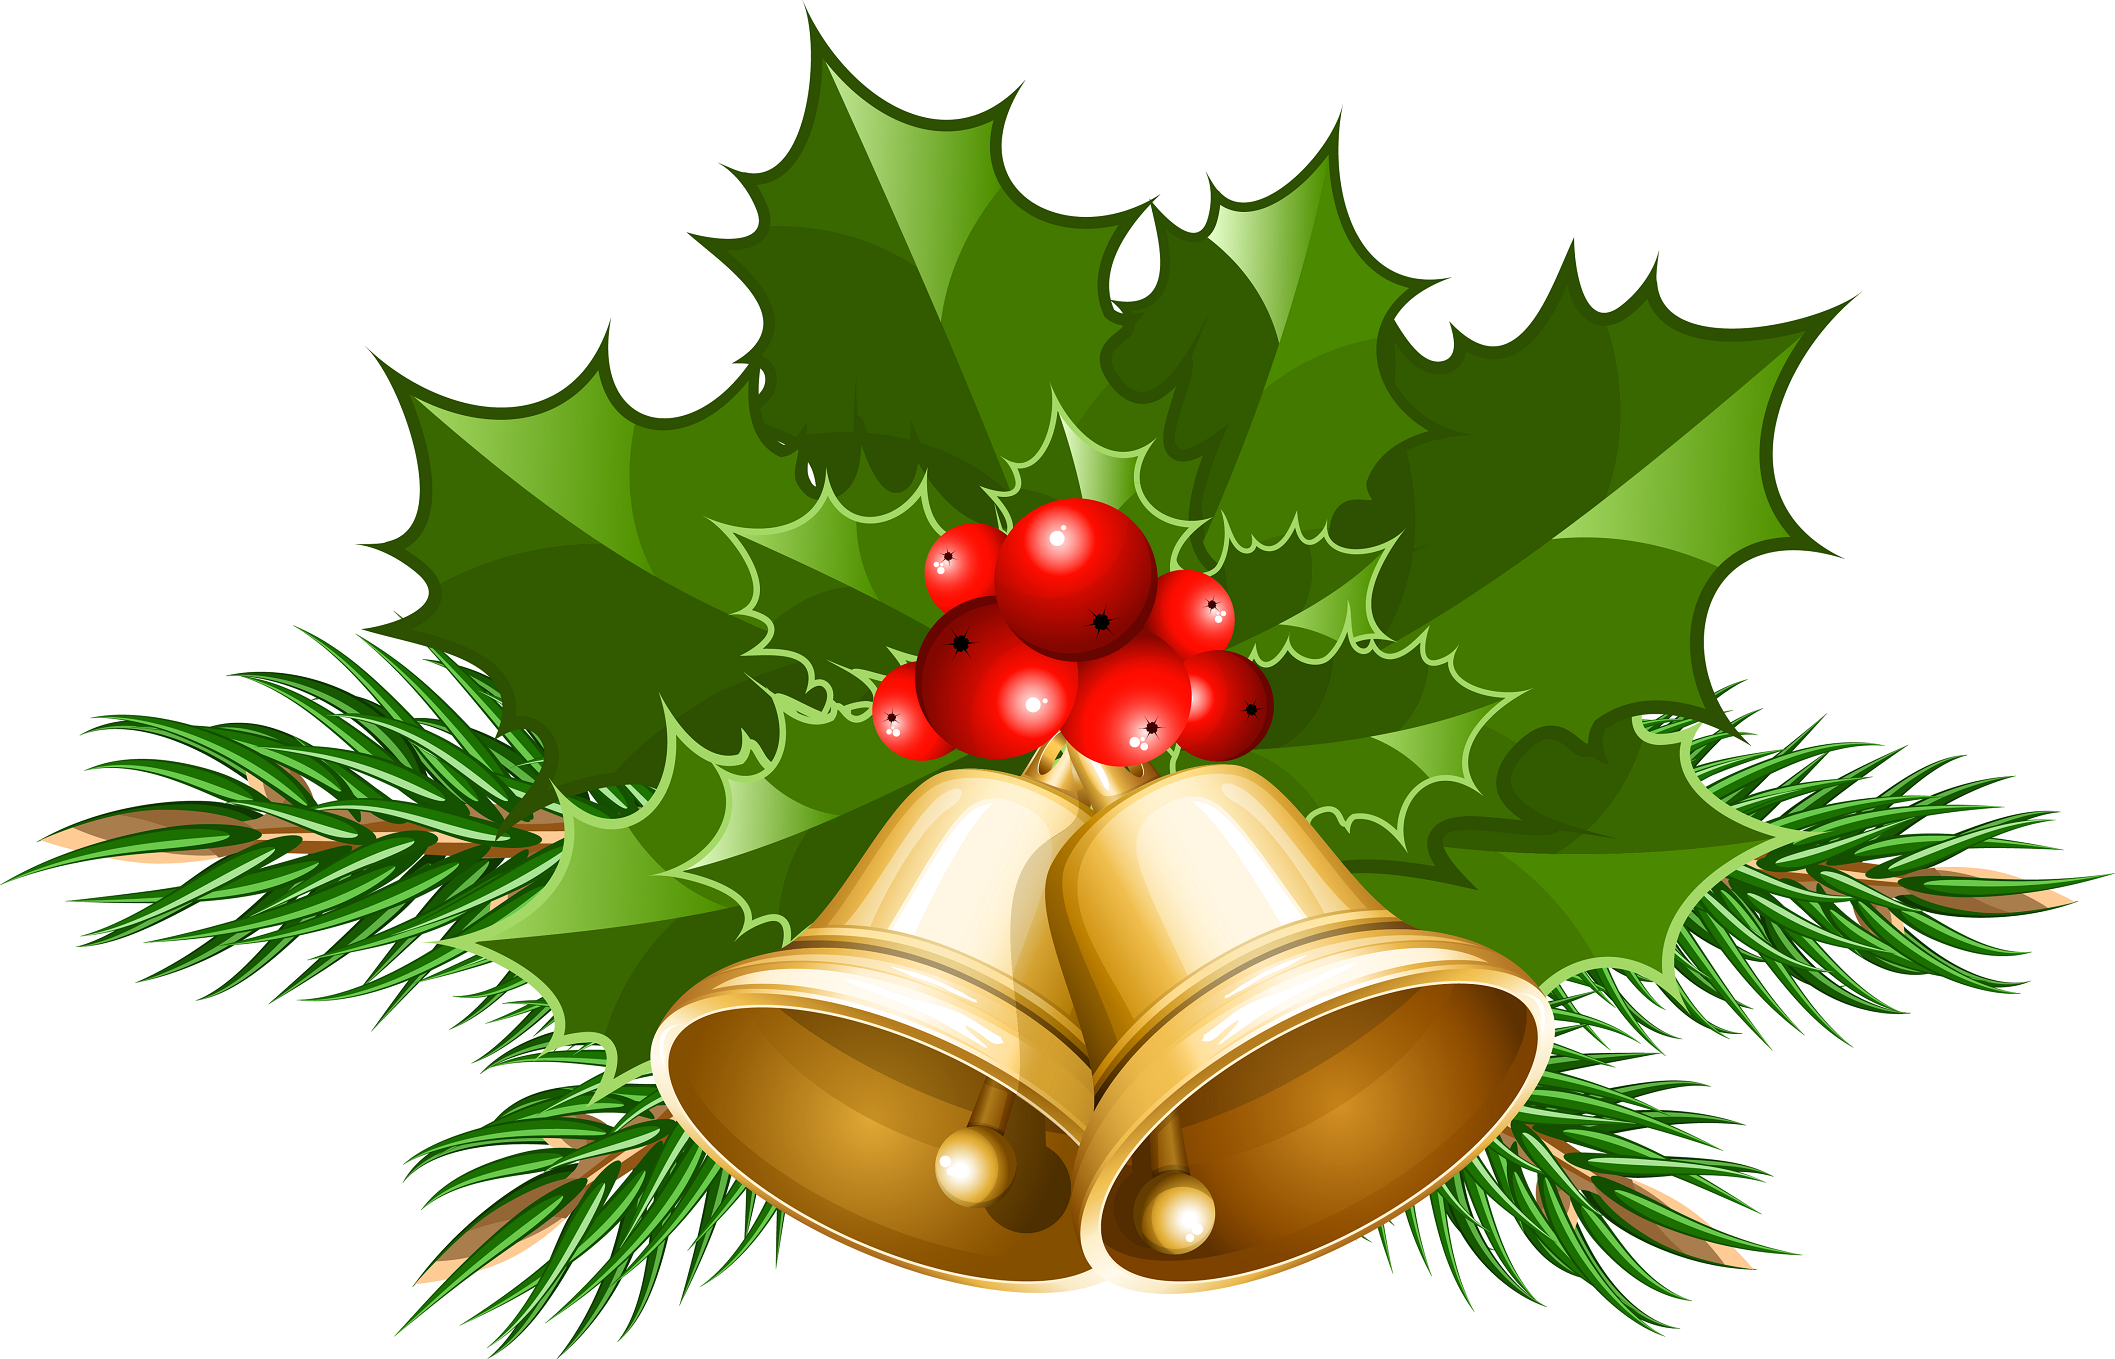 Christmas bells with holly clip art large Christmas